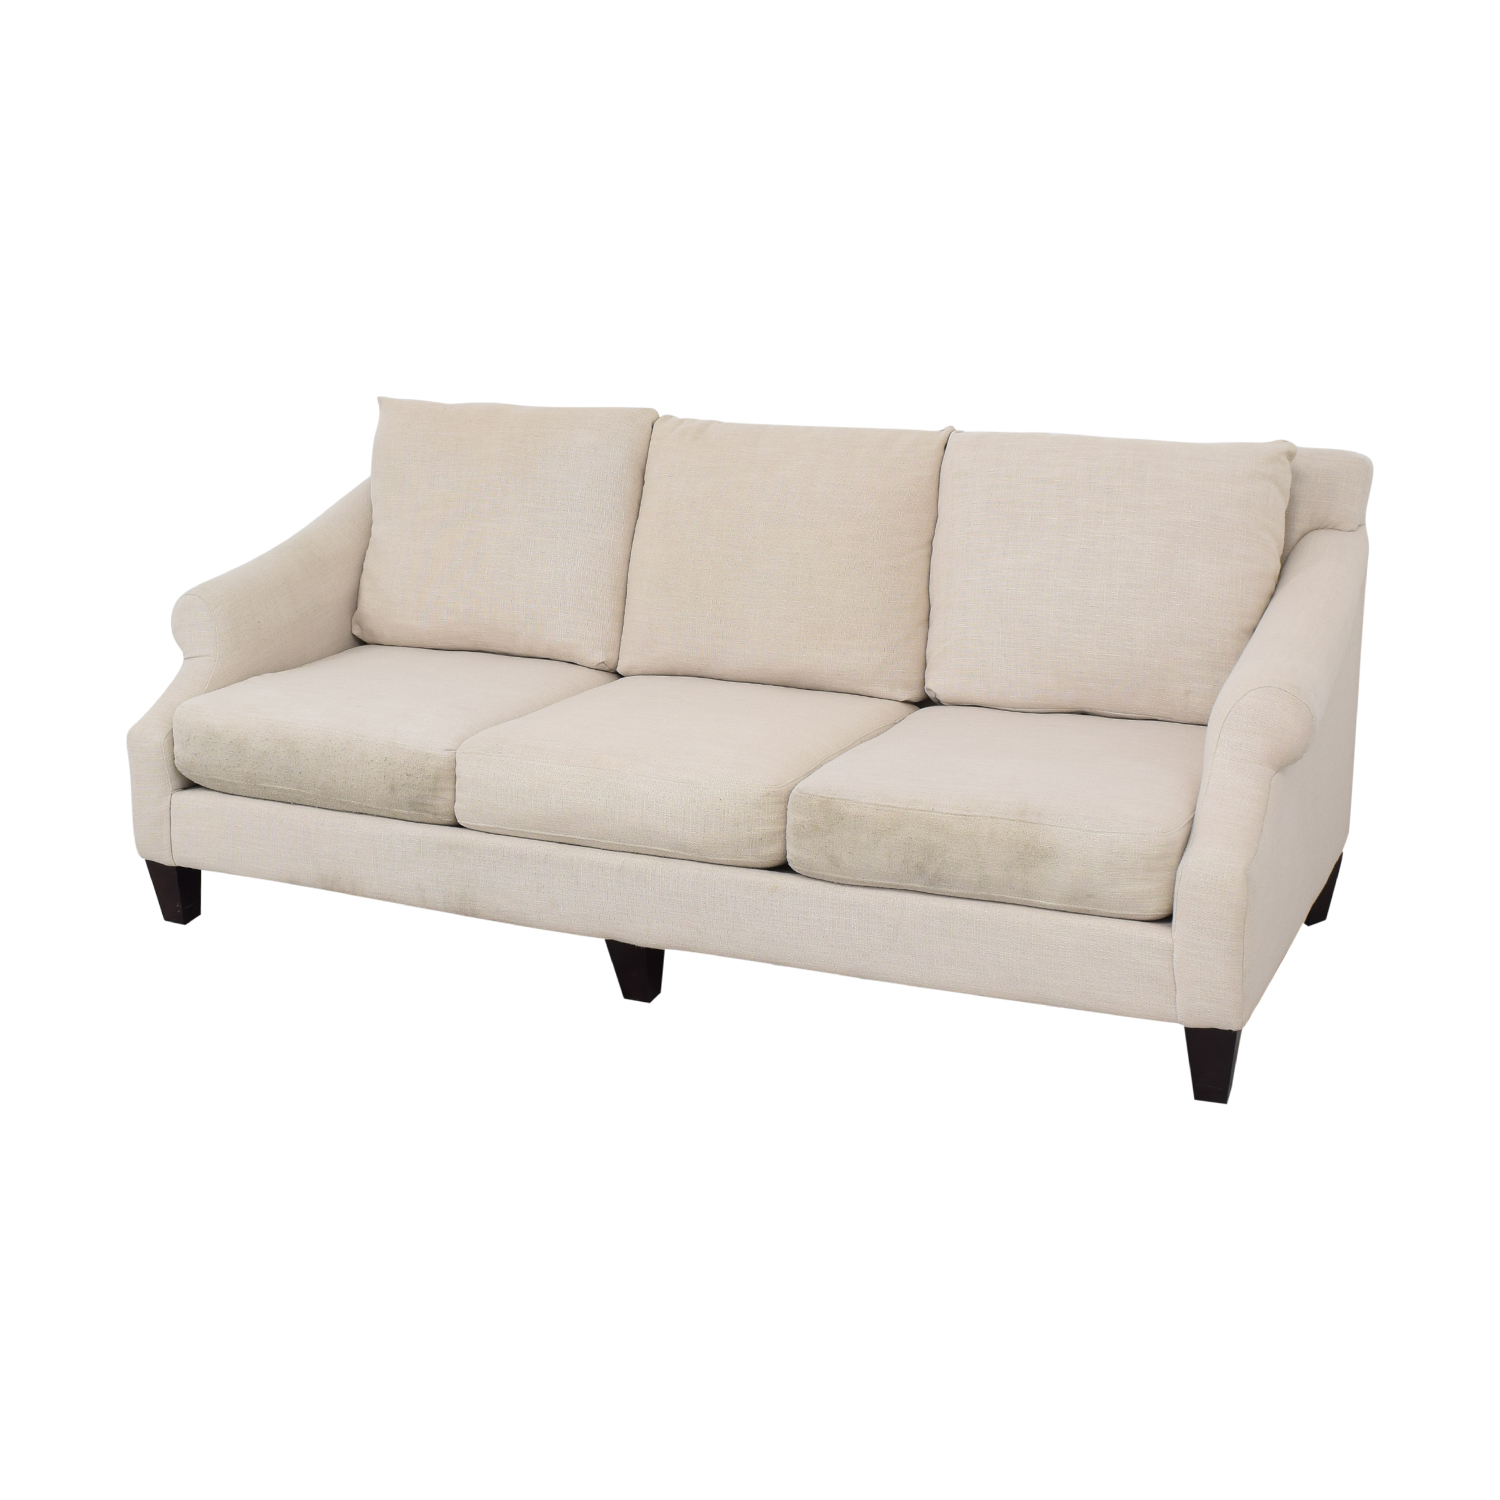 Bauhaus Furniture Bauhaus Furniture Three Seater  Sofa